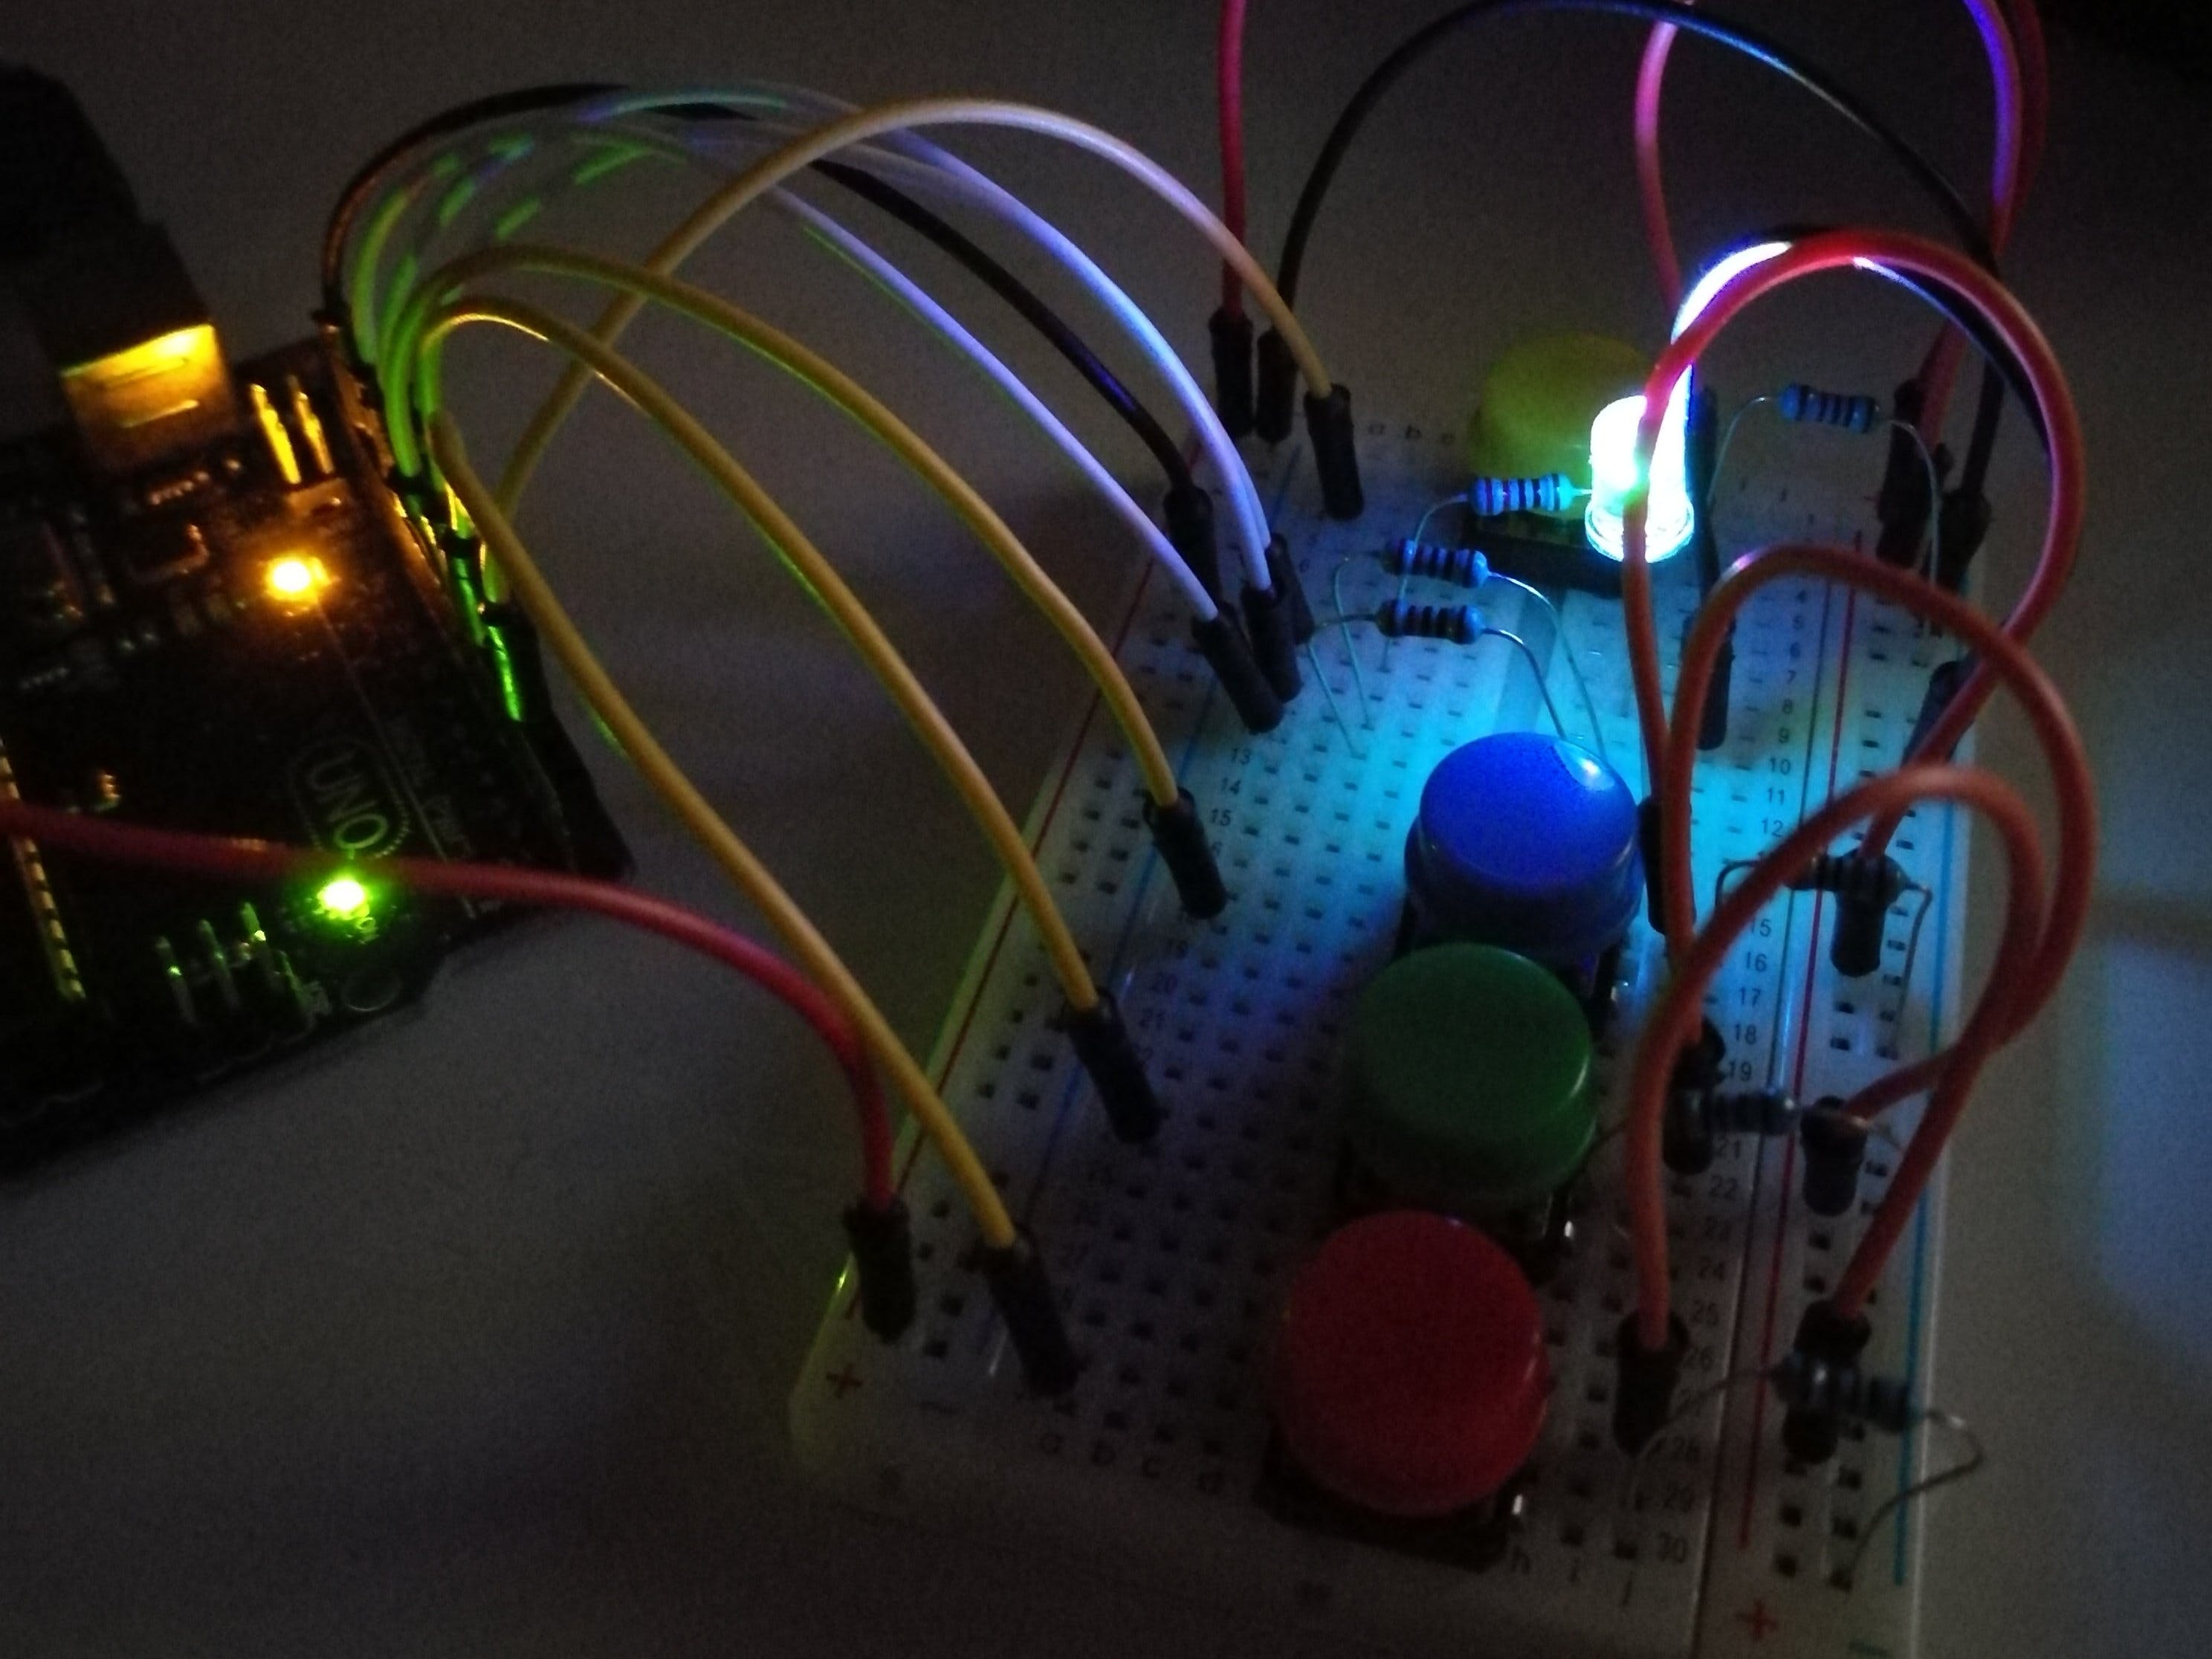 RGB led button controller